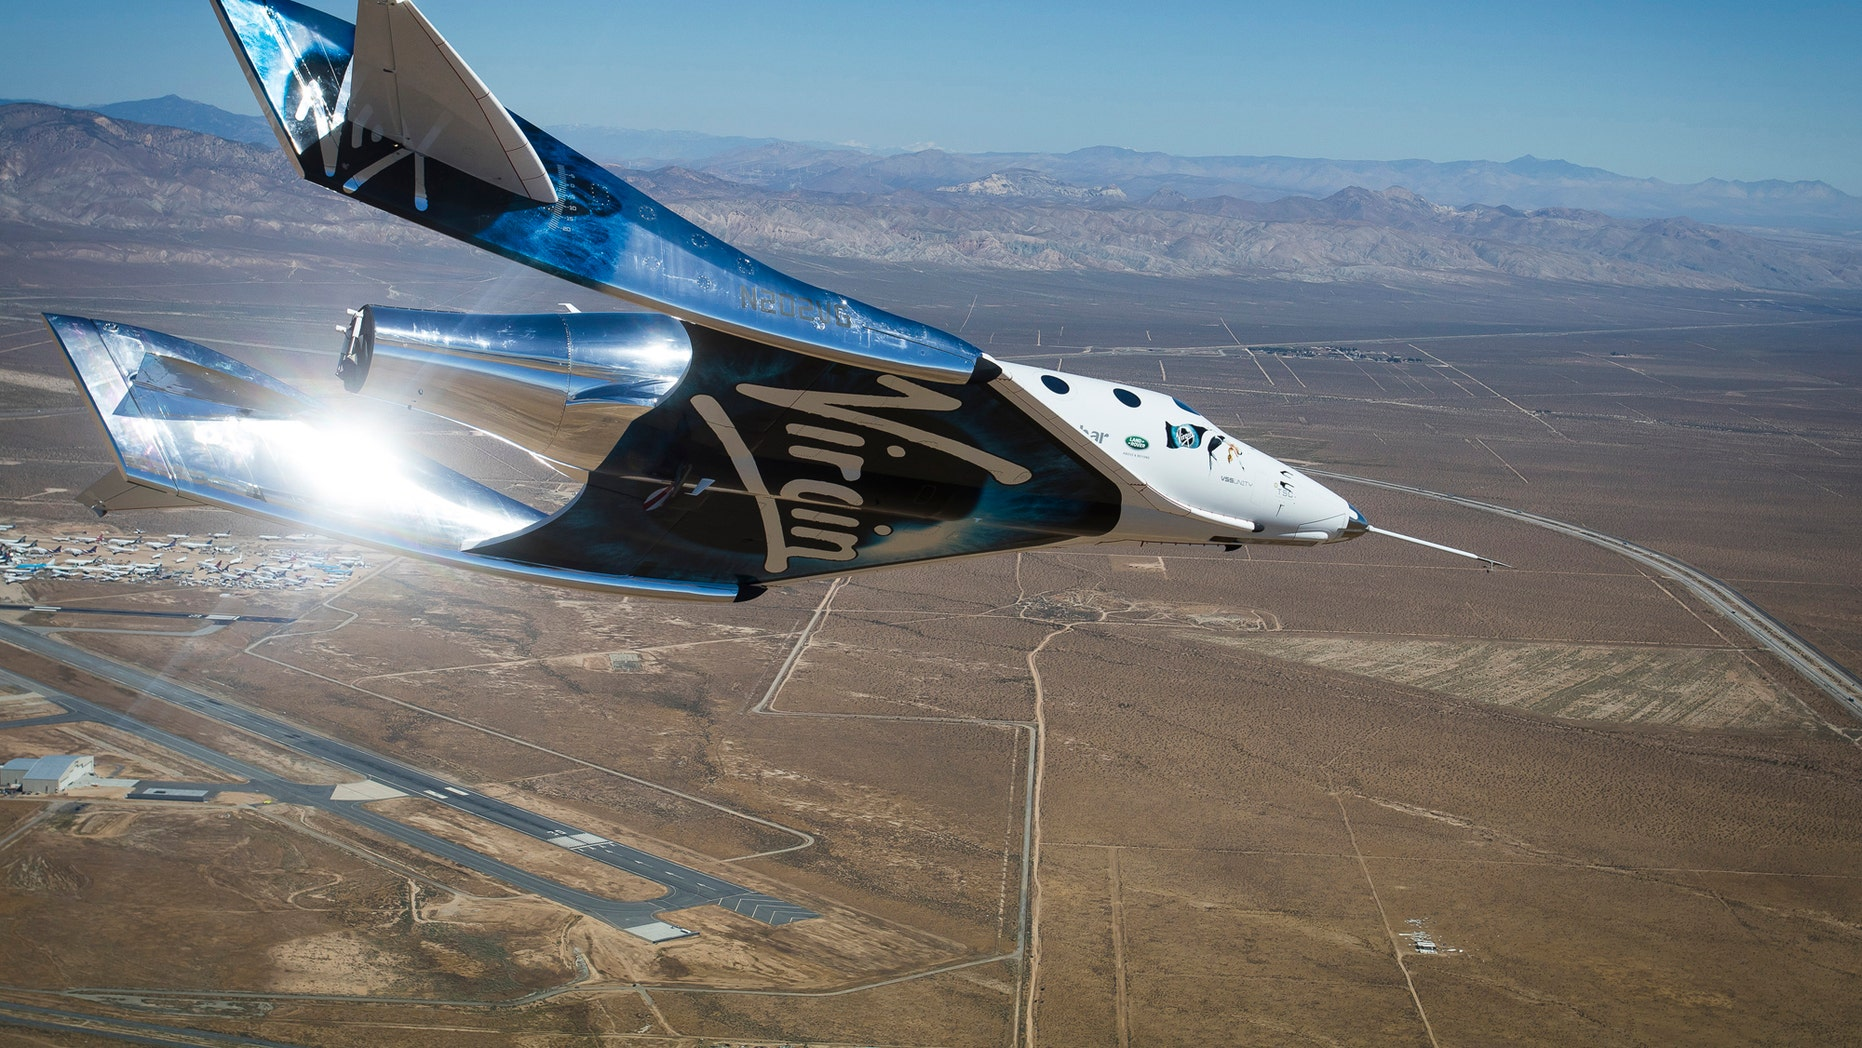 Virgin Galactic's spaceship Unity flies freely over the Mojave Air and Space Port in California during a May 1, 2017 test flight.